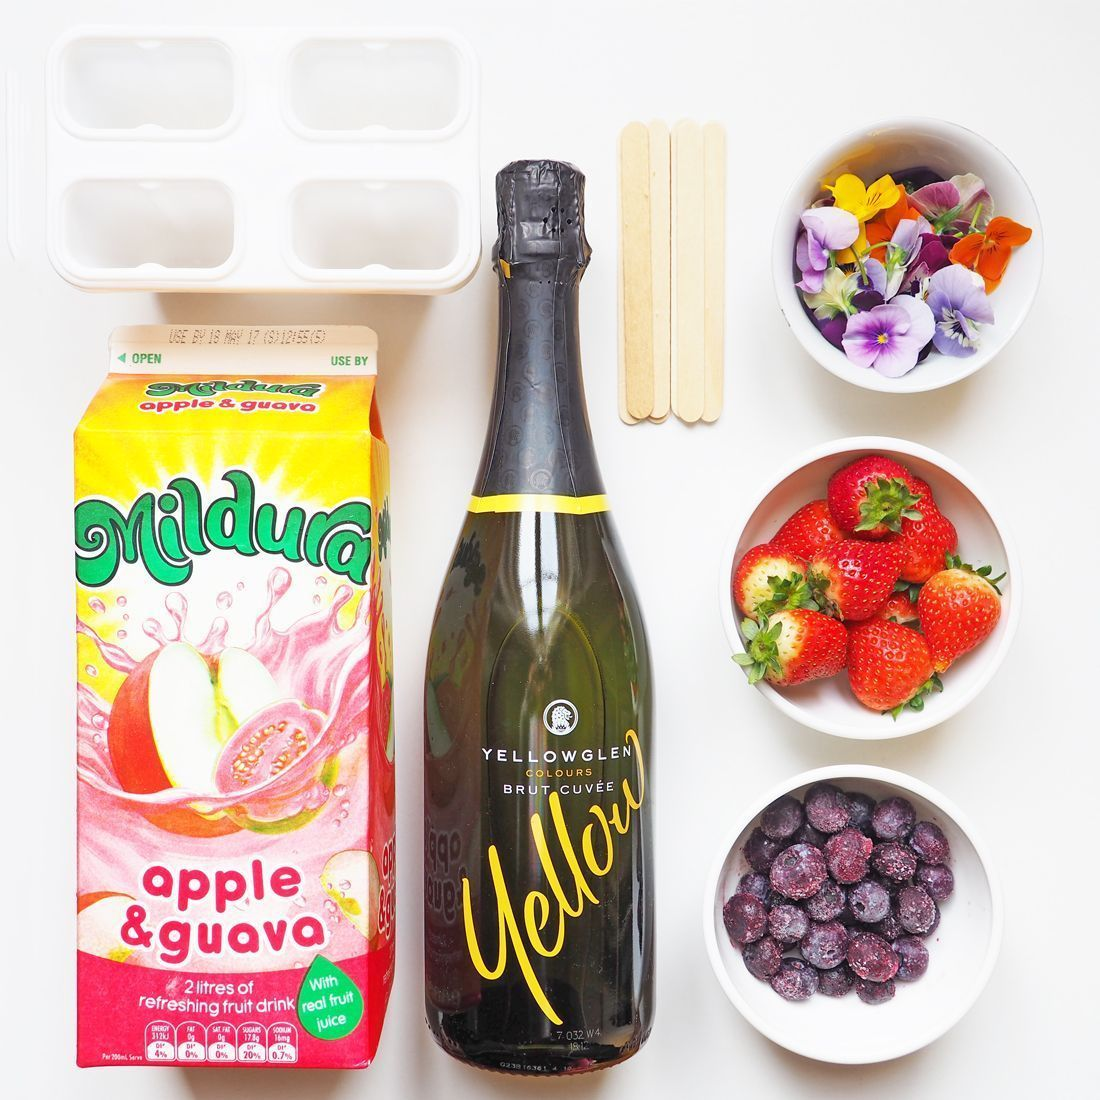 Your Next Event Will Be Poppin' With These Fruity Champagne Popsicles #champagnepopsicles Your Next Event Will Be Poppin' With These Fruity Champagne Popsicles | Brit + Co #champagnepopsicles Your Next Event Will Be Poppin' With These Fruity Champagne Popsicles #champagnepopsicles Your Next Event Will Be Poppin' With These Fruity Champagne Popsicles | Brit + Co #champagnepopsicles Your Next Event Will Be Poppin' With These Fruity Champagne Popsicles #champagnepopsicles Your Next Event #champagnepopsicles